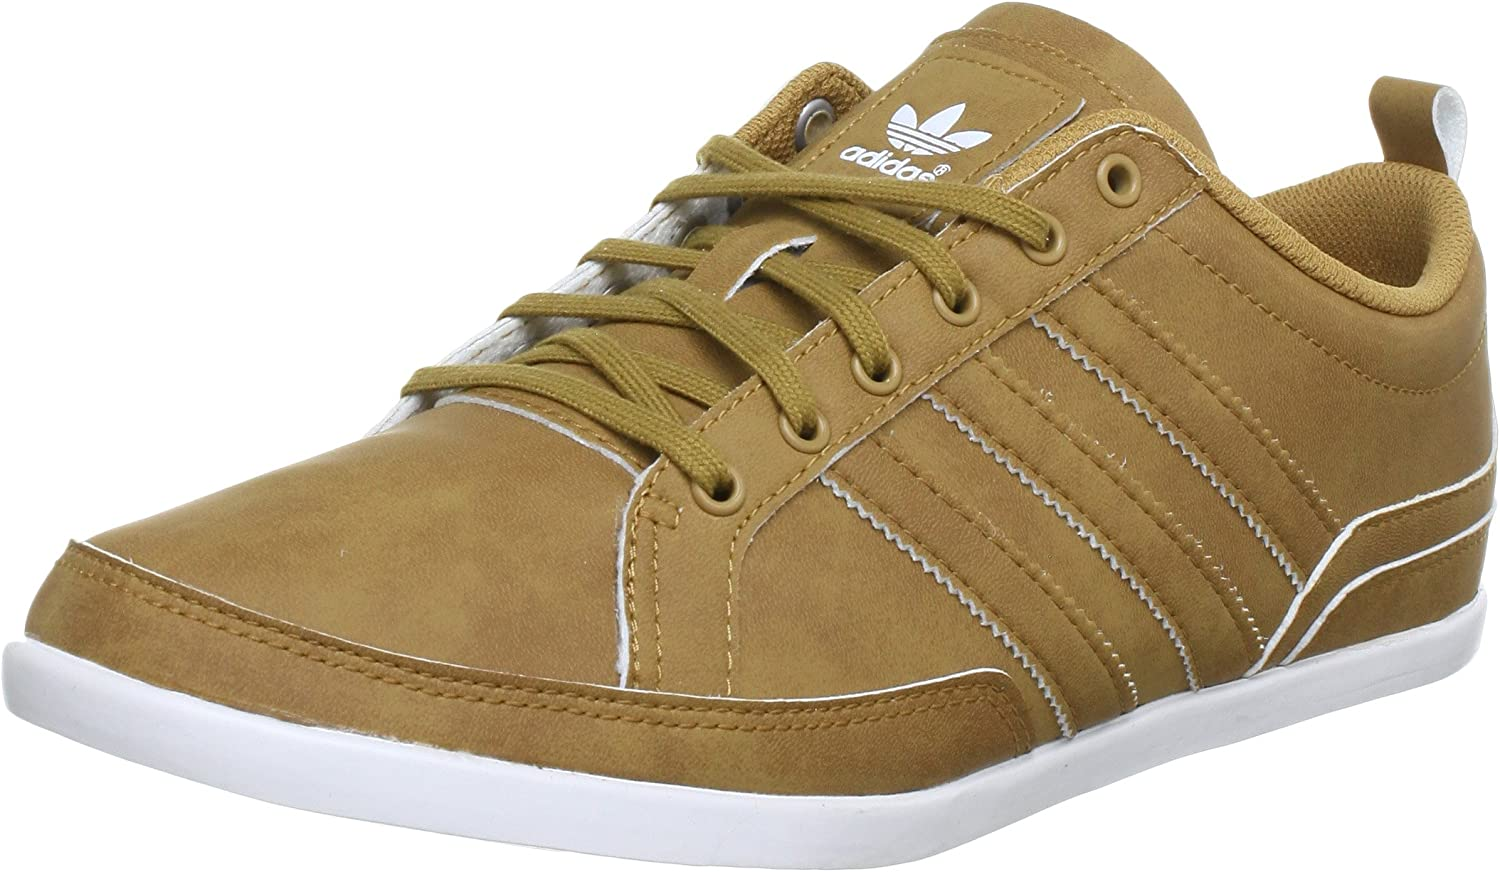 Adidas ADI UP Low, Men's Trainers